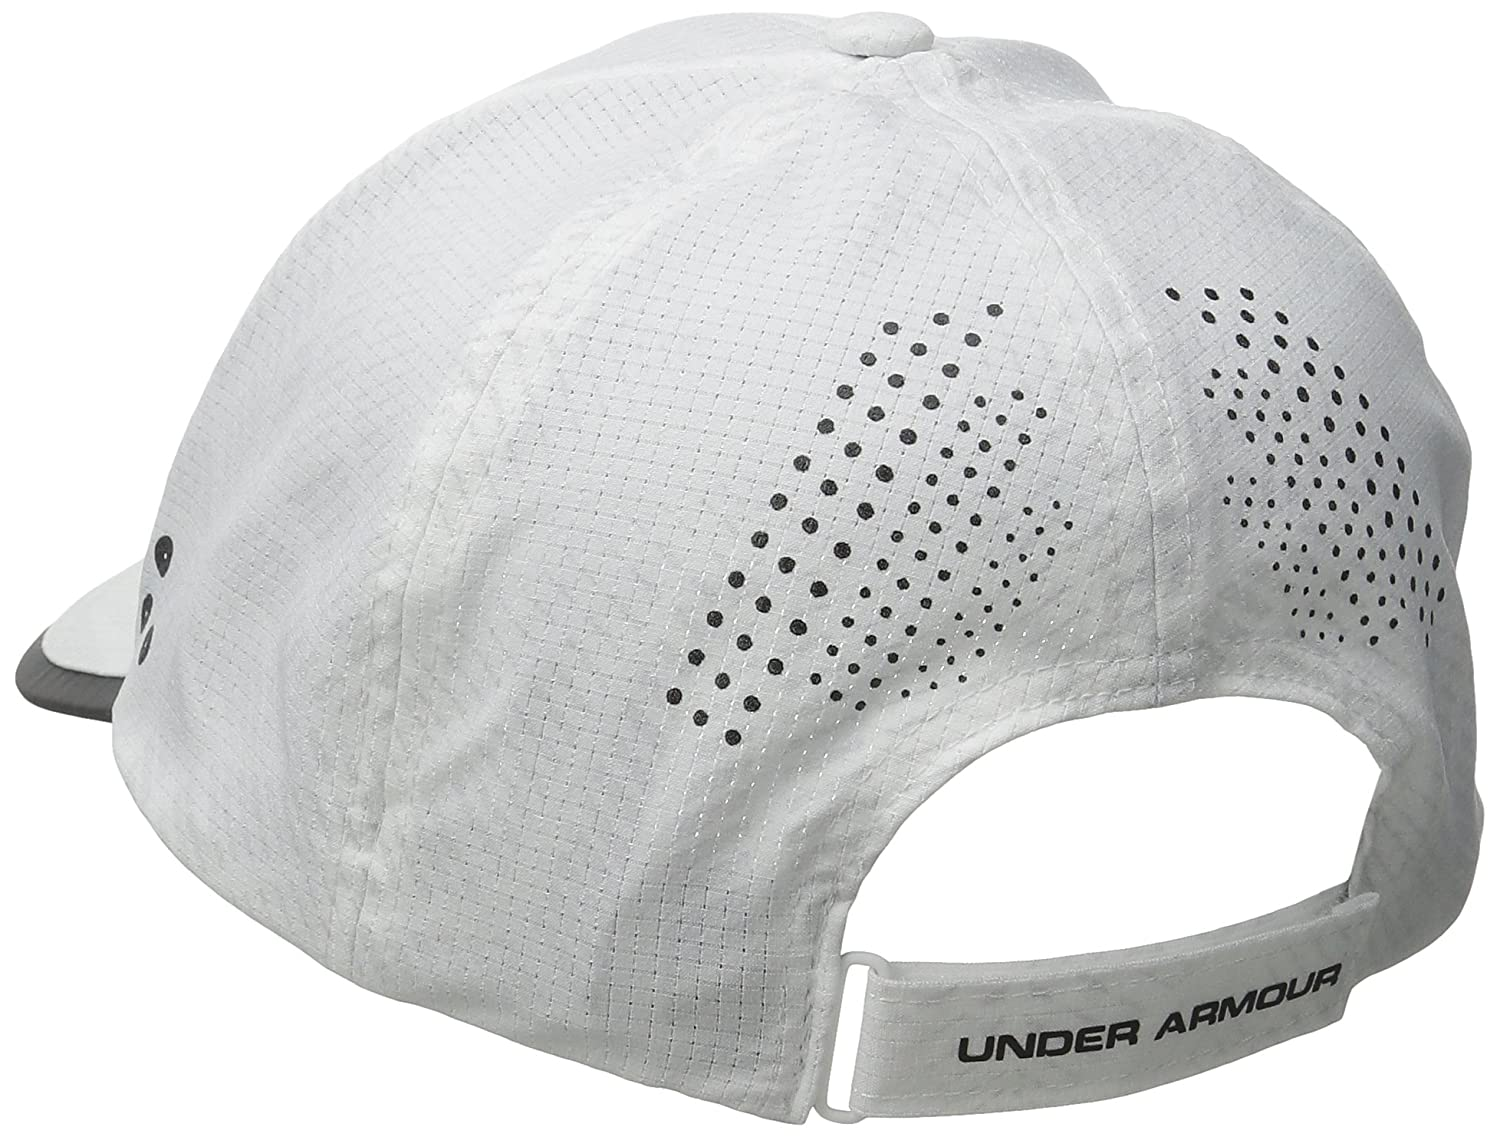 09ced58ba59 Amazon.com  Under Armour Men s Flash ArmourVent 2.0 Cap